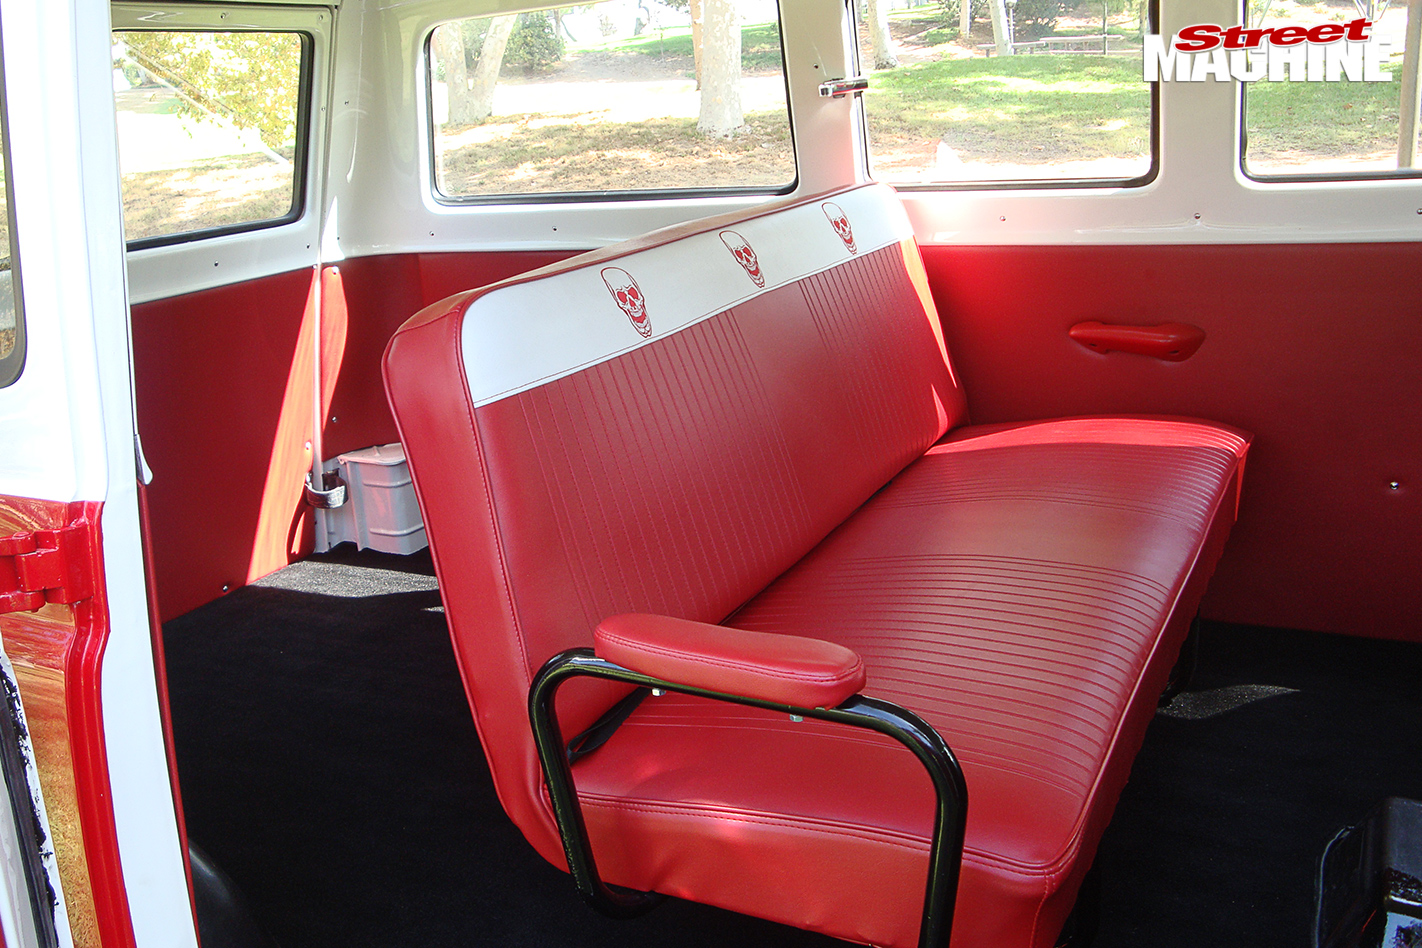 Dave -grohl -ford -falcon -van -inside